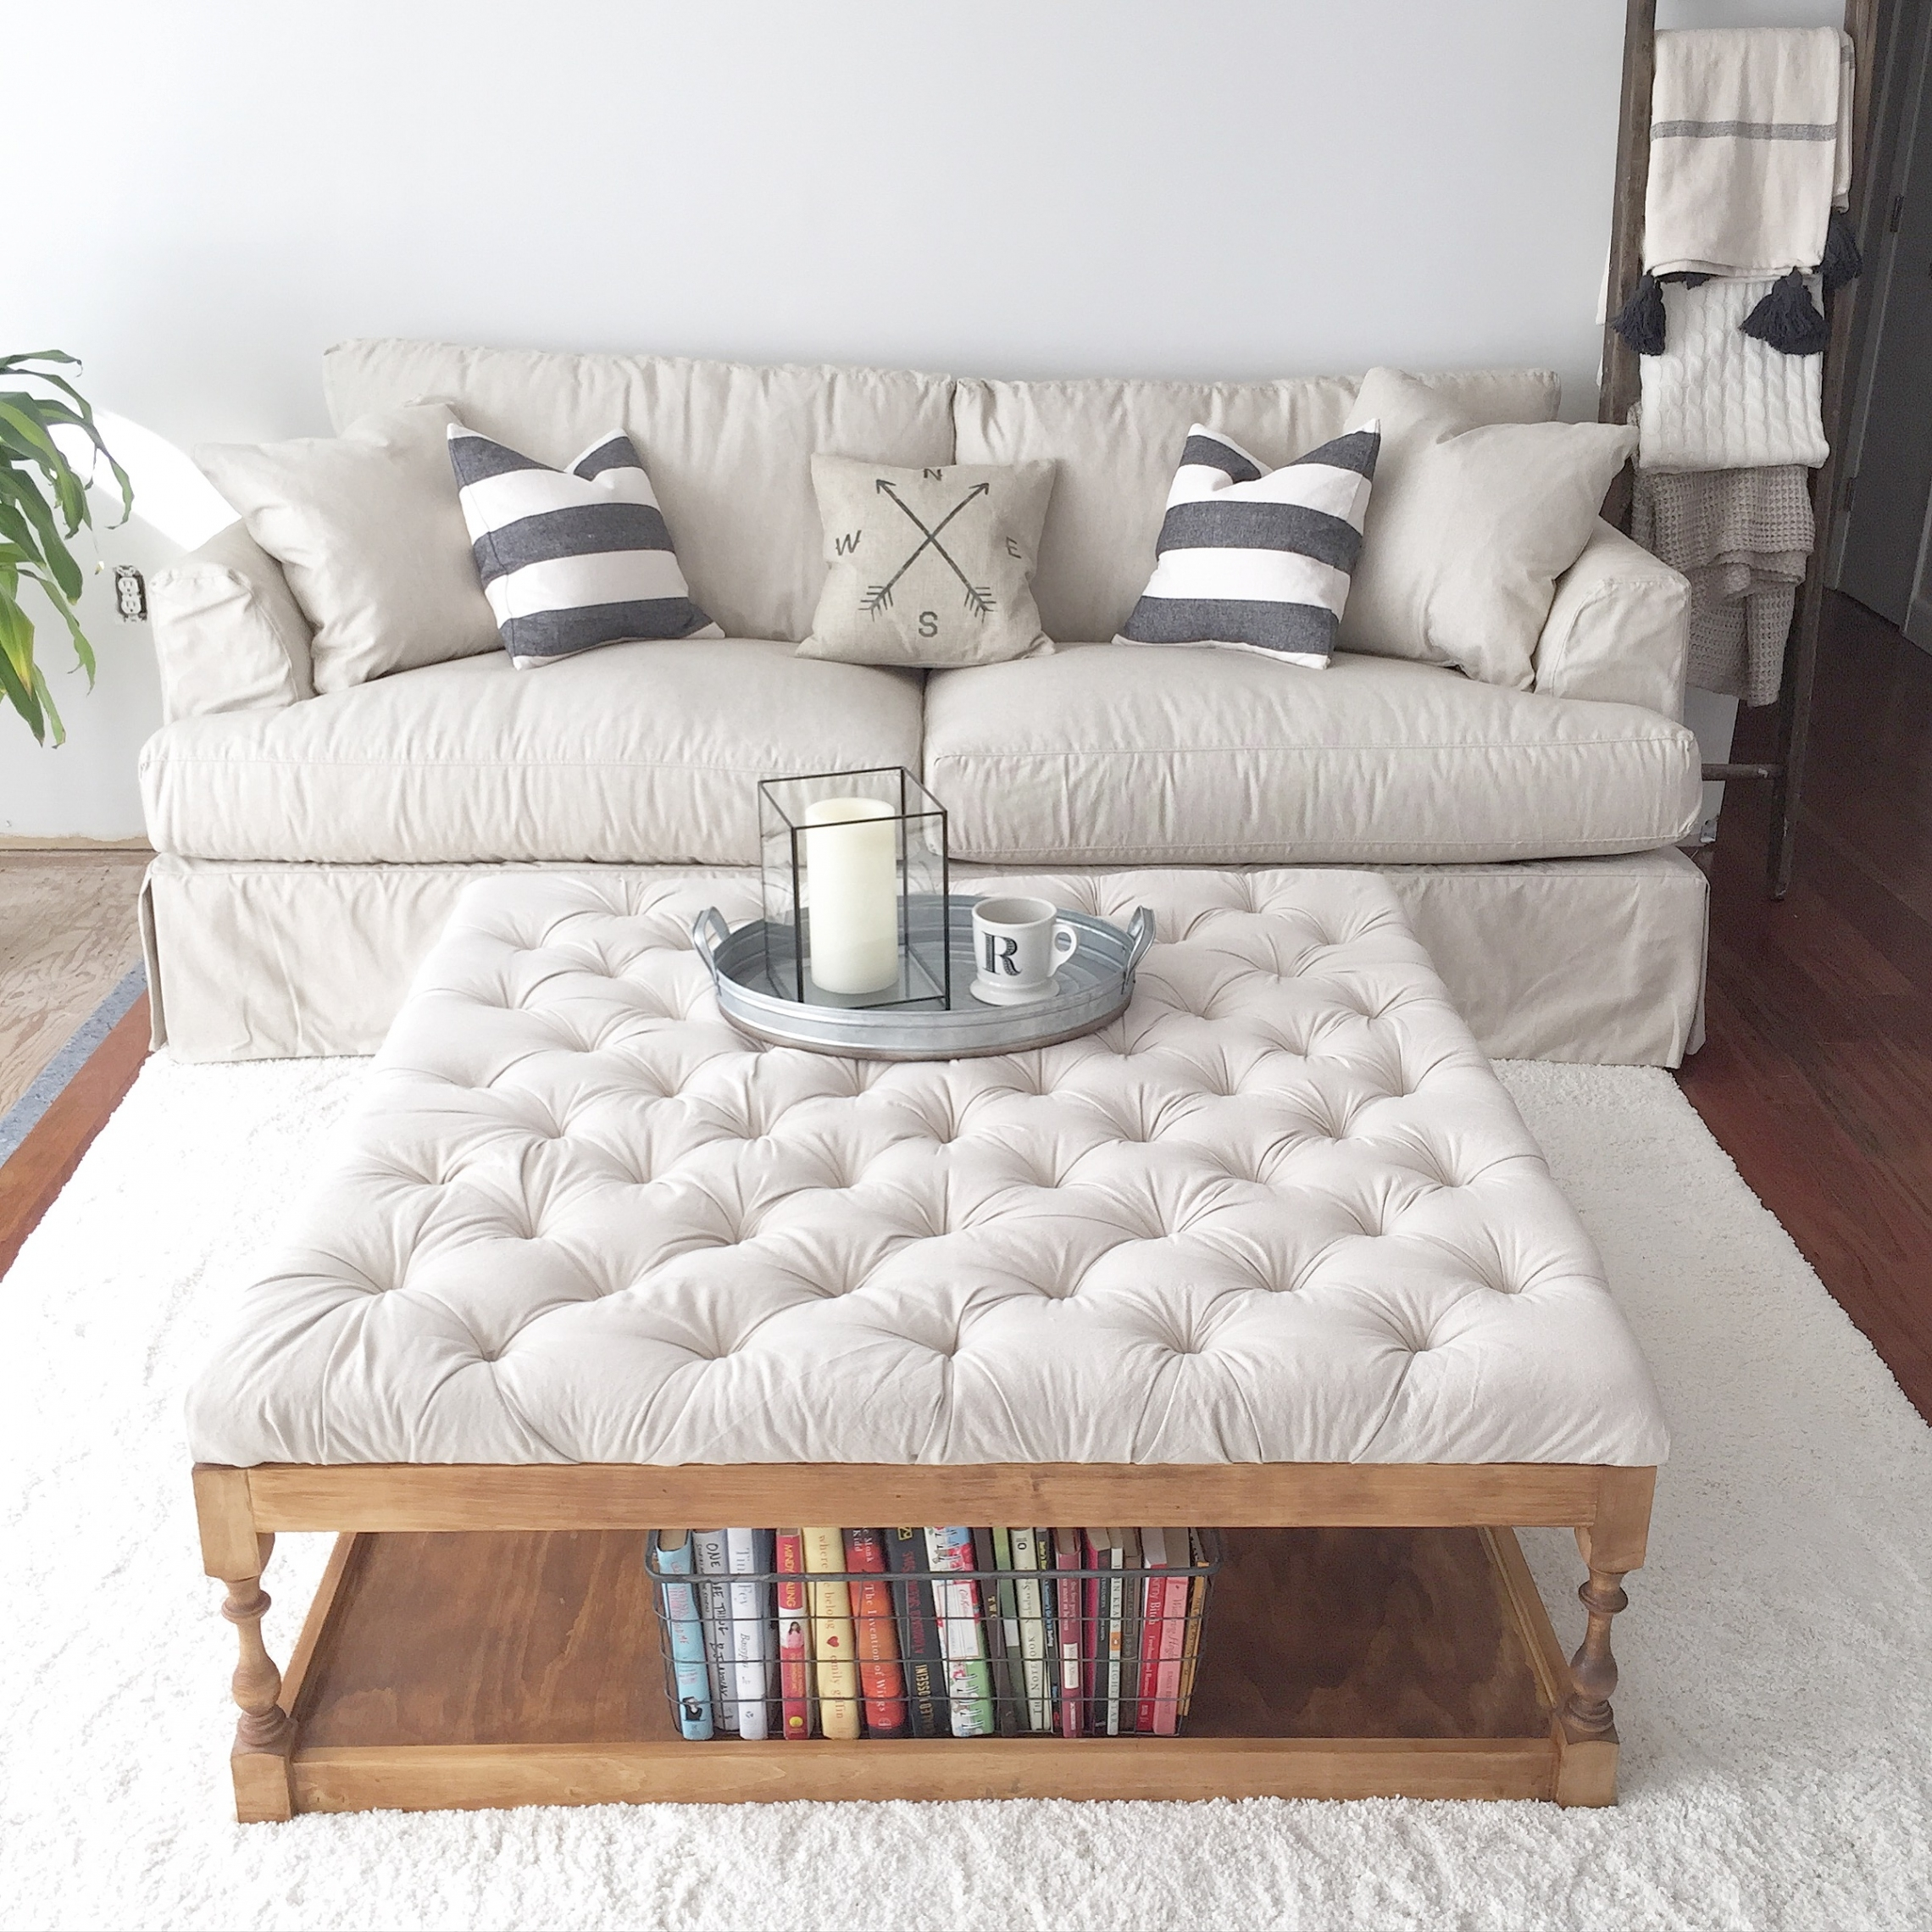 Furniture Oversized Storage Ottoman